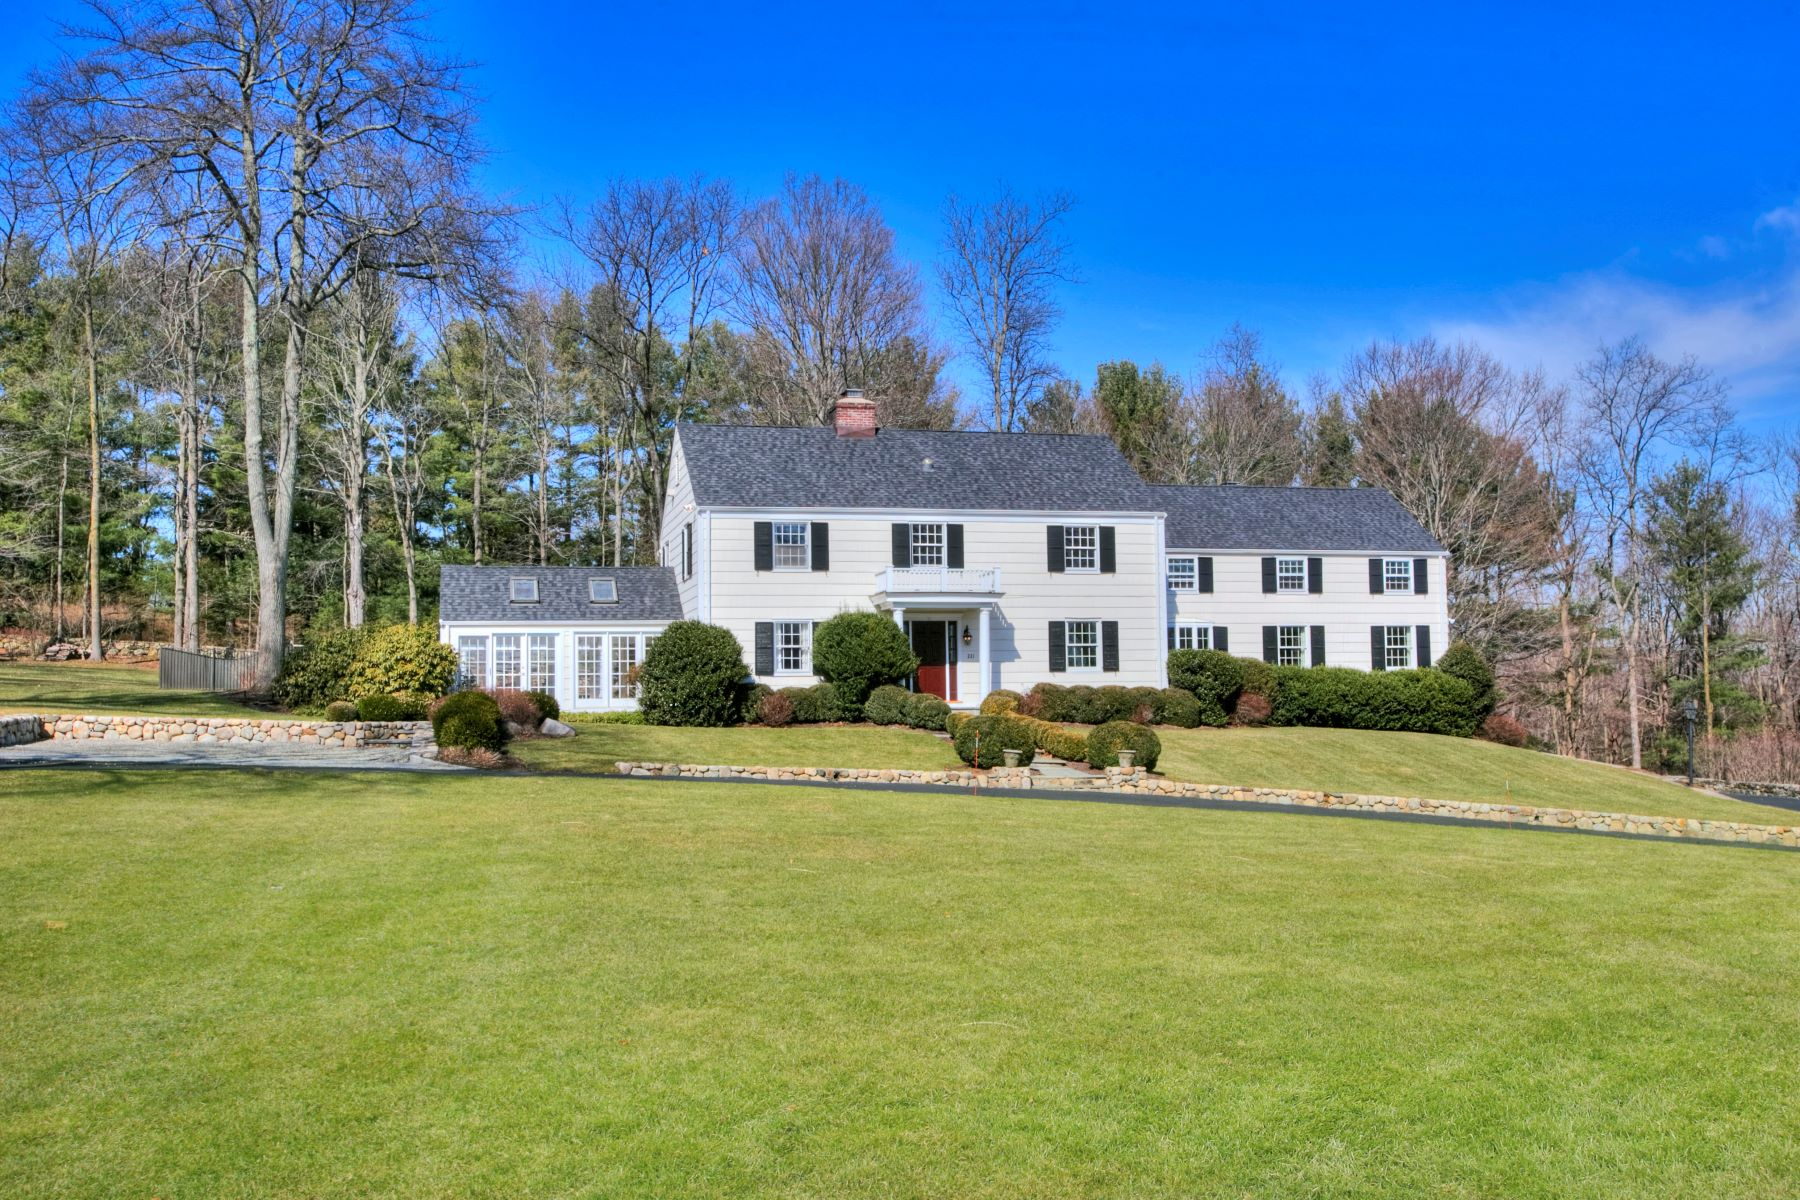 House for Sale at 221 Canoe Hill Road 221 Canoe Hill Road New Canaan, Connecticut 06840 United States